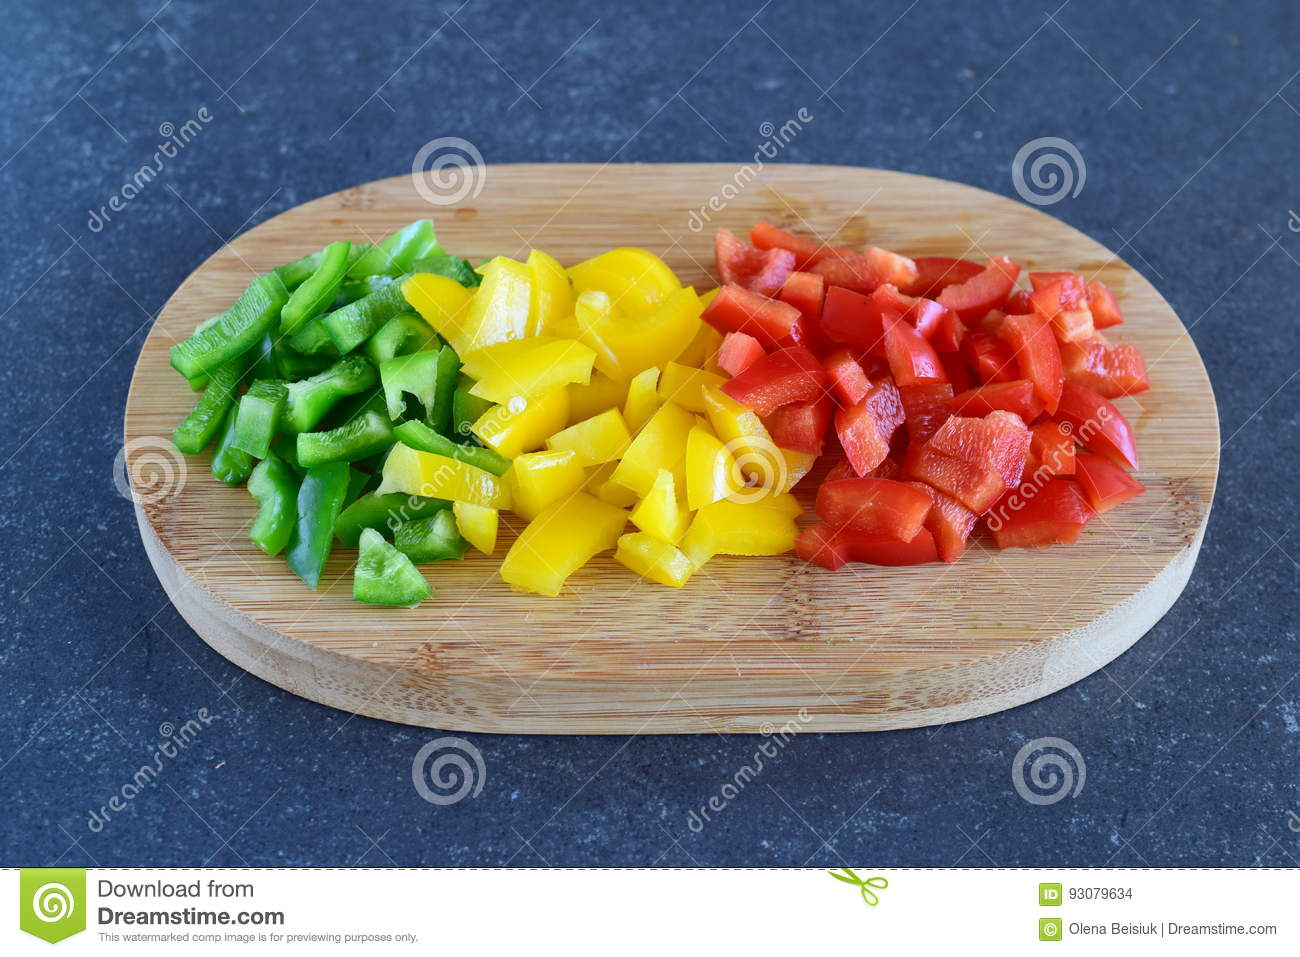 Download Green, Red And Yellow Sweet Paprika Cut In Cubes On A Wooden Cutting Board On A Dark Abstract Background. Step By Step Stock Photo - Image of group, bright: 93079634